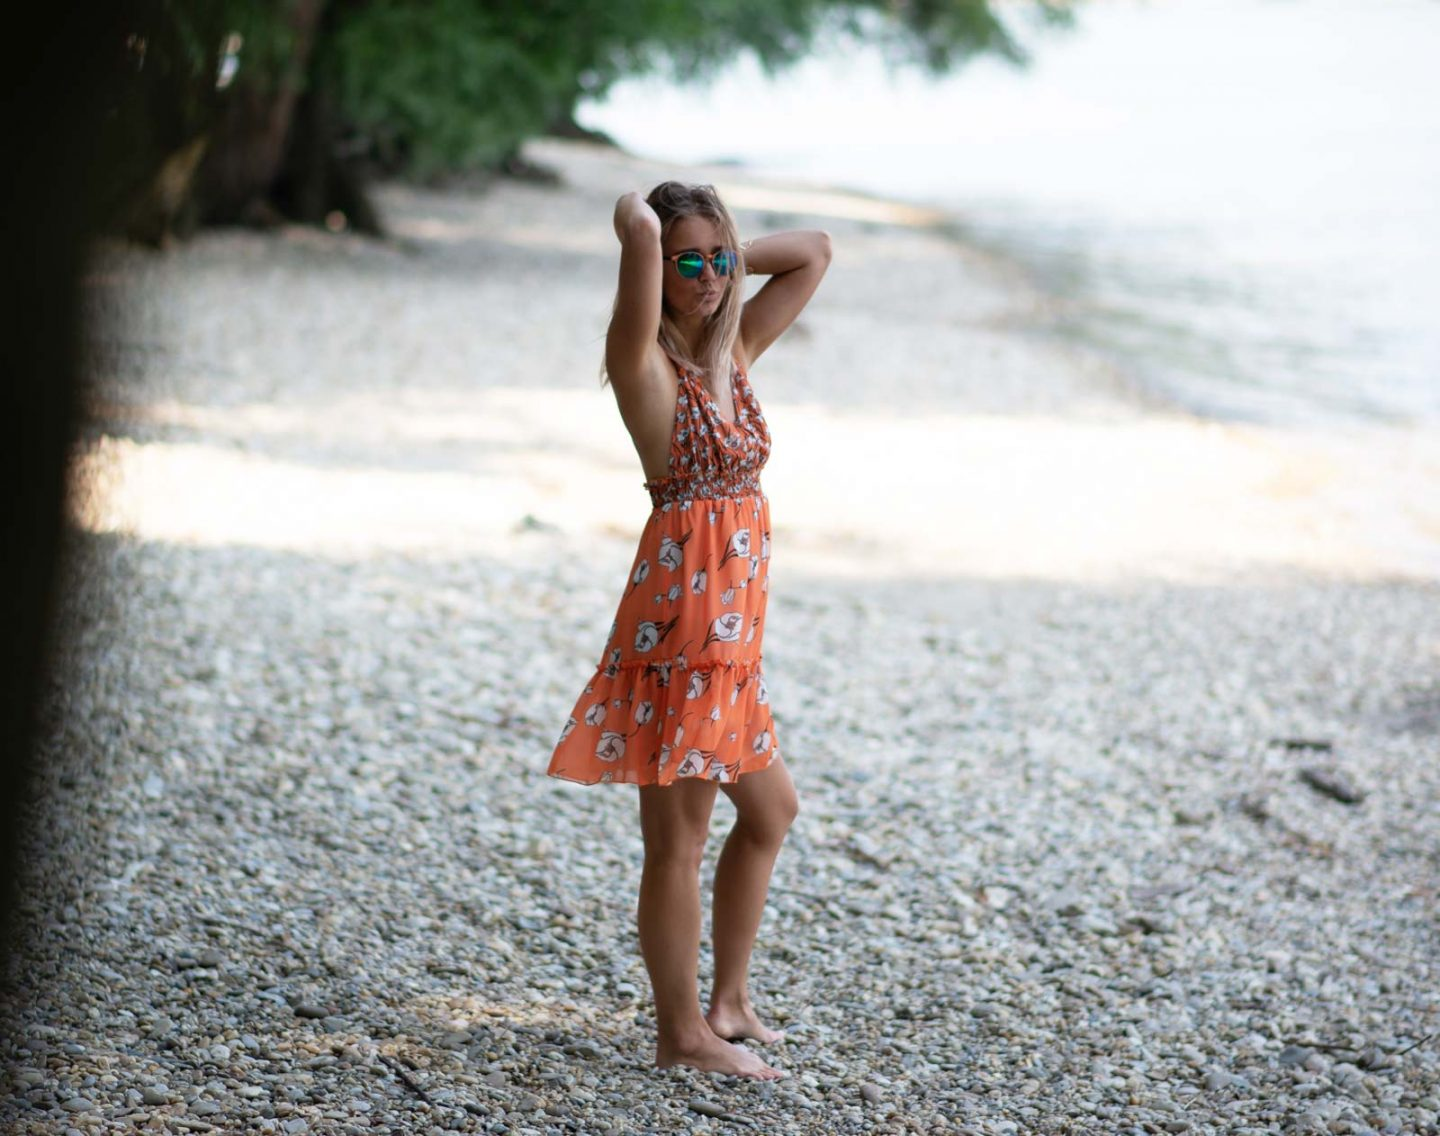 blonde girl standing on beach wearing mirror sunnies and orange dress